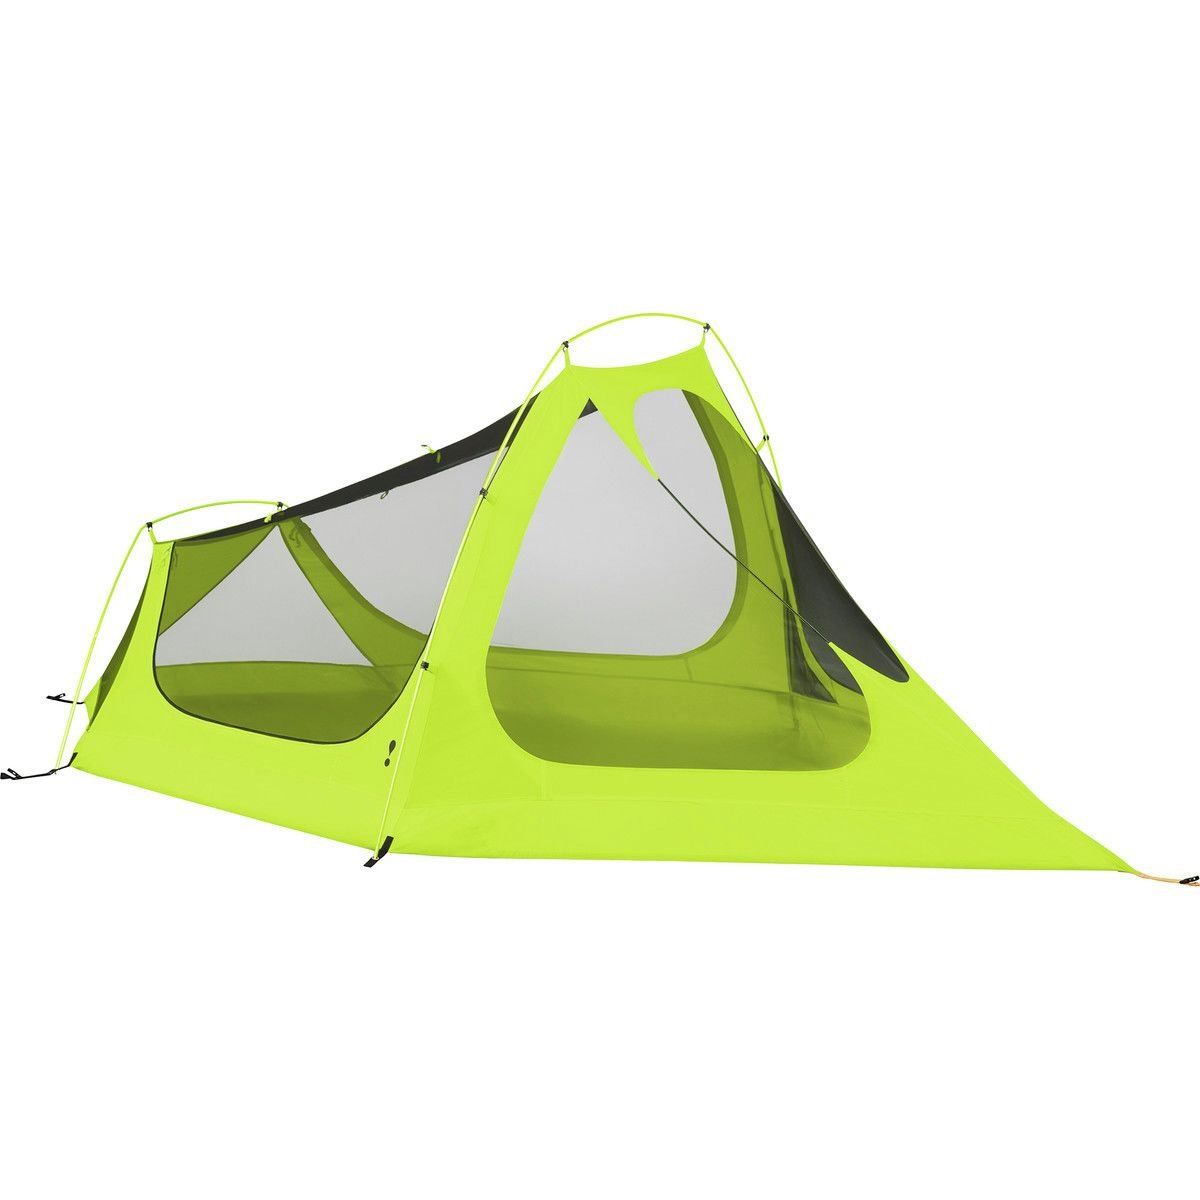 sc 1 st  Amazon.com & Amazon.com : Eureka Spitfire 2 Tent : Sports u0026 Outdoors